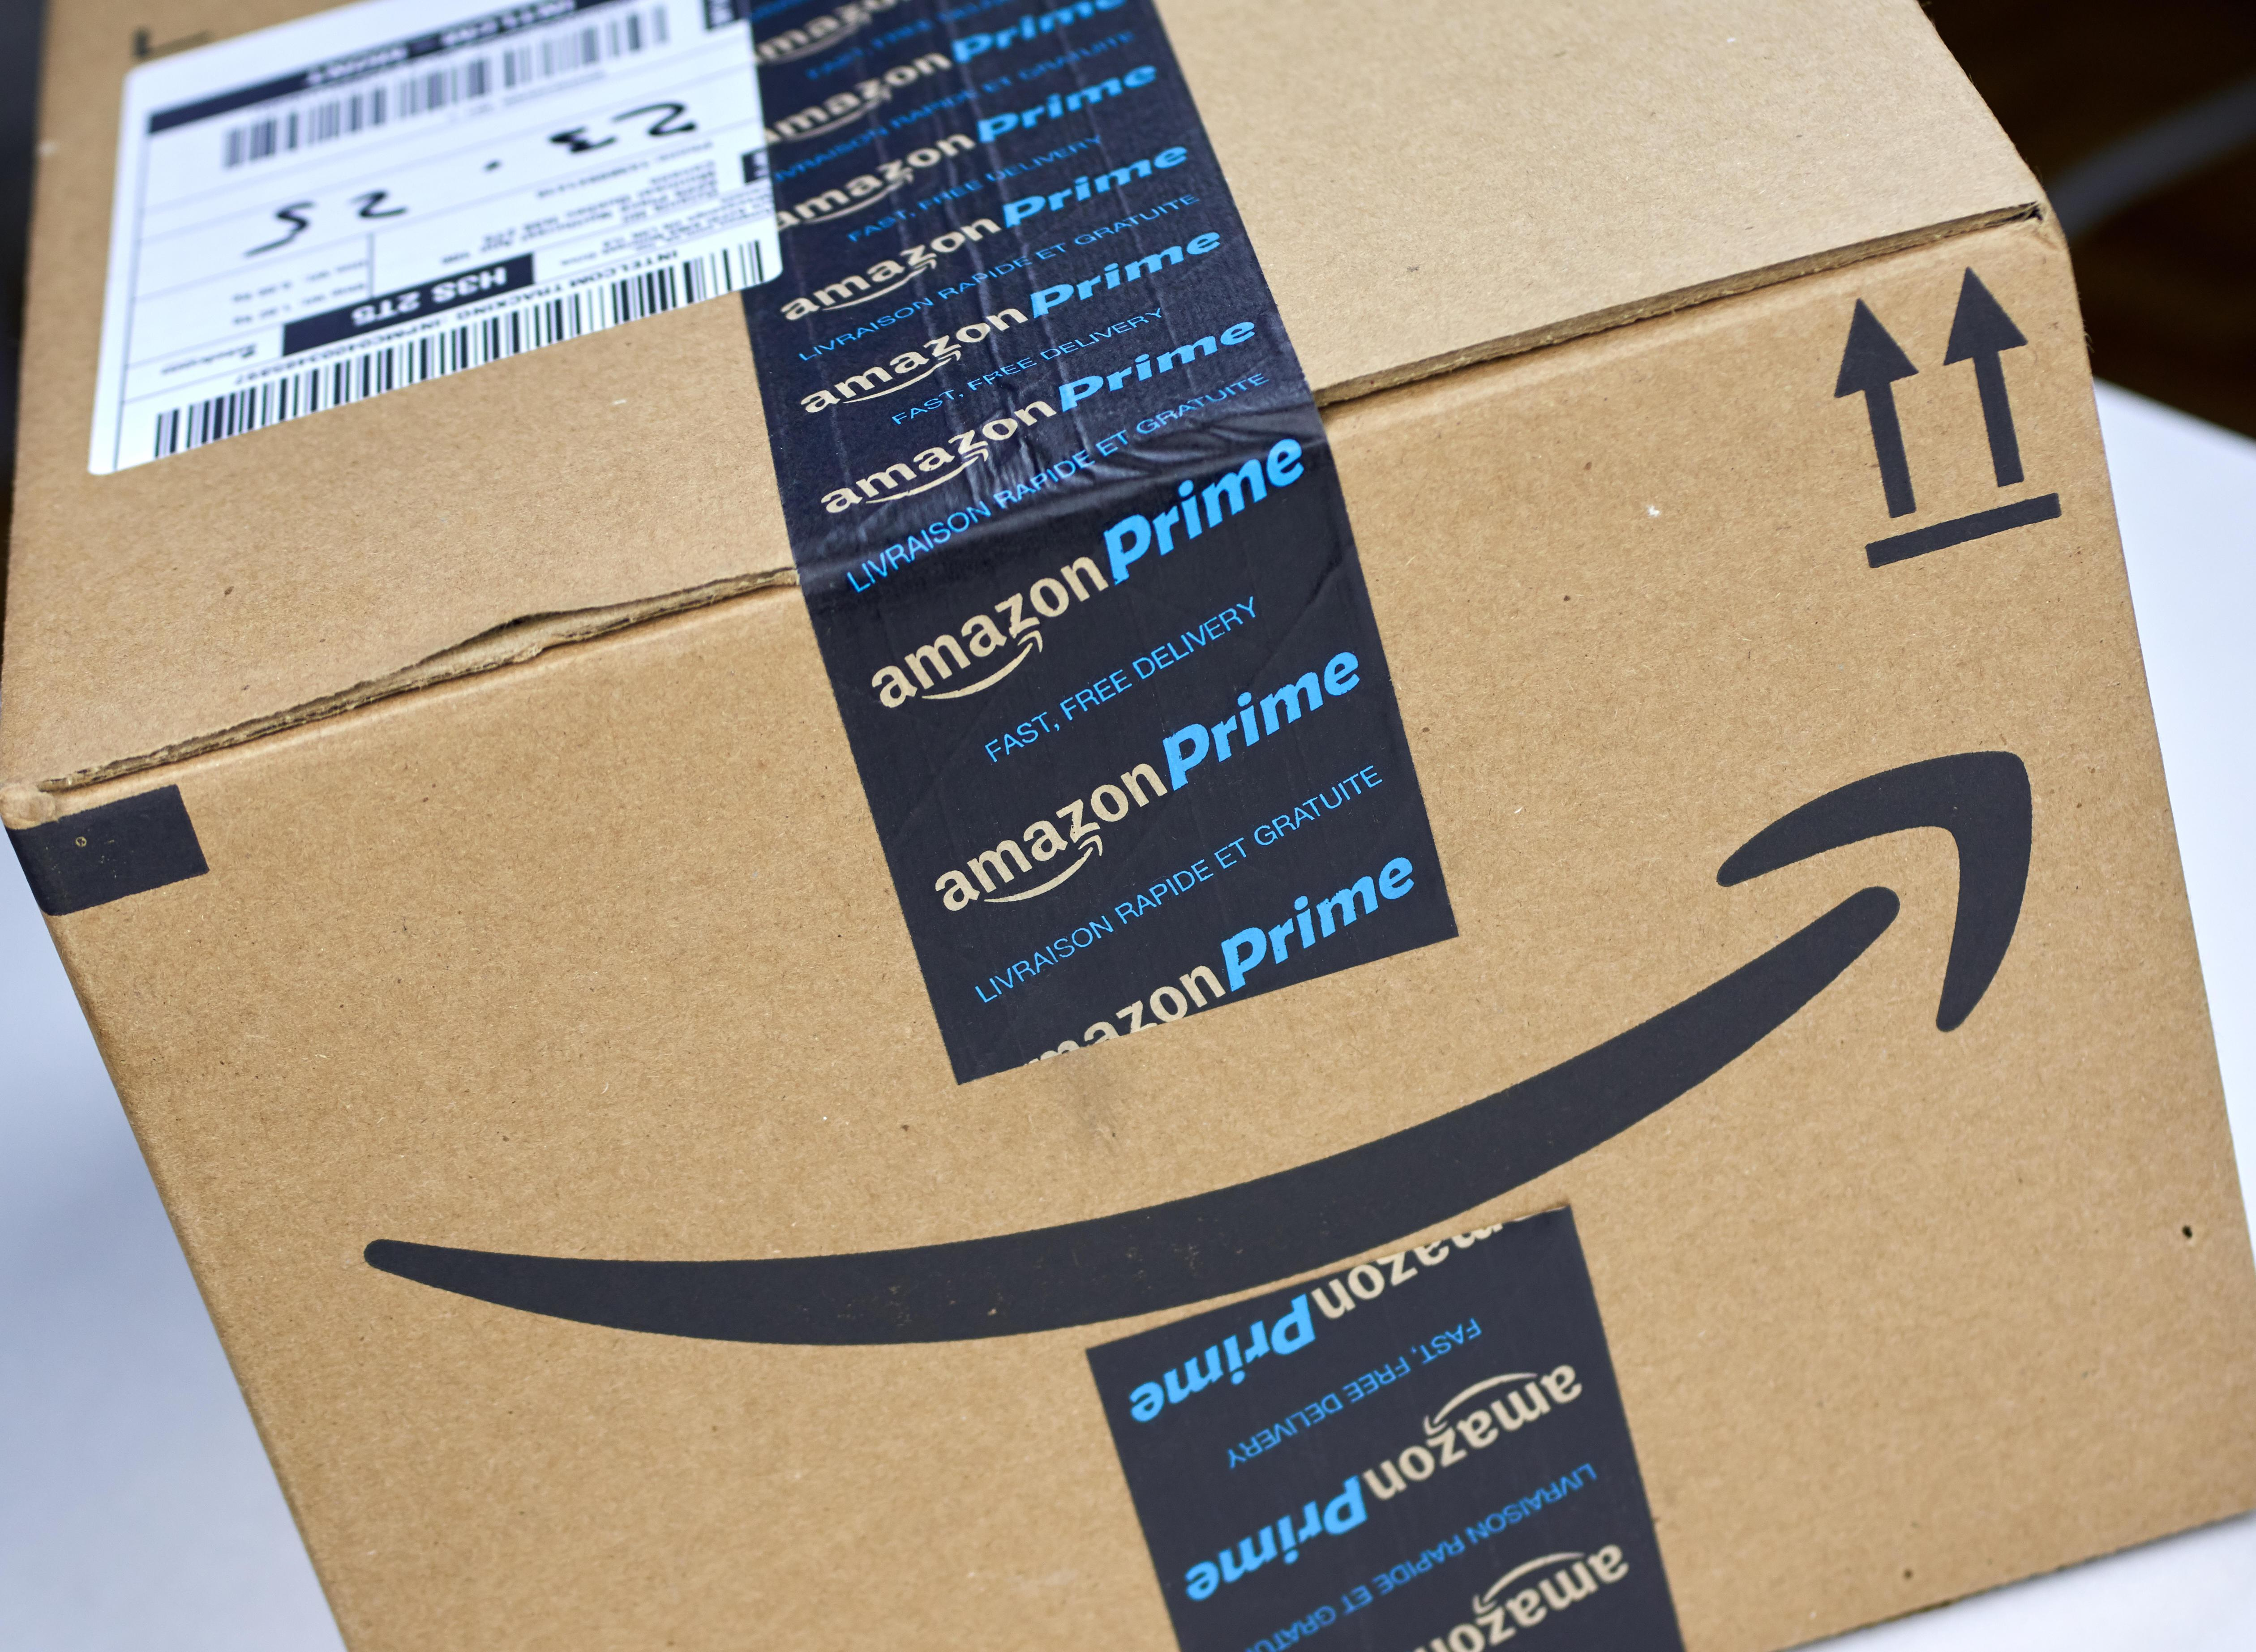 Amazon Usa Livraison France Amazon Prime Uk Price Rise Likely For Brits New Warning Over